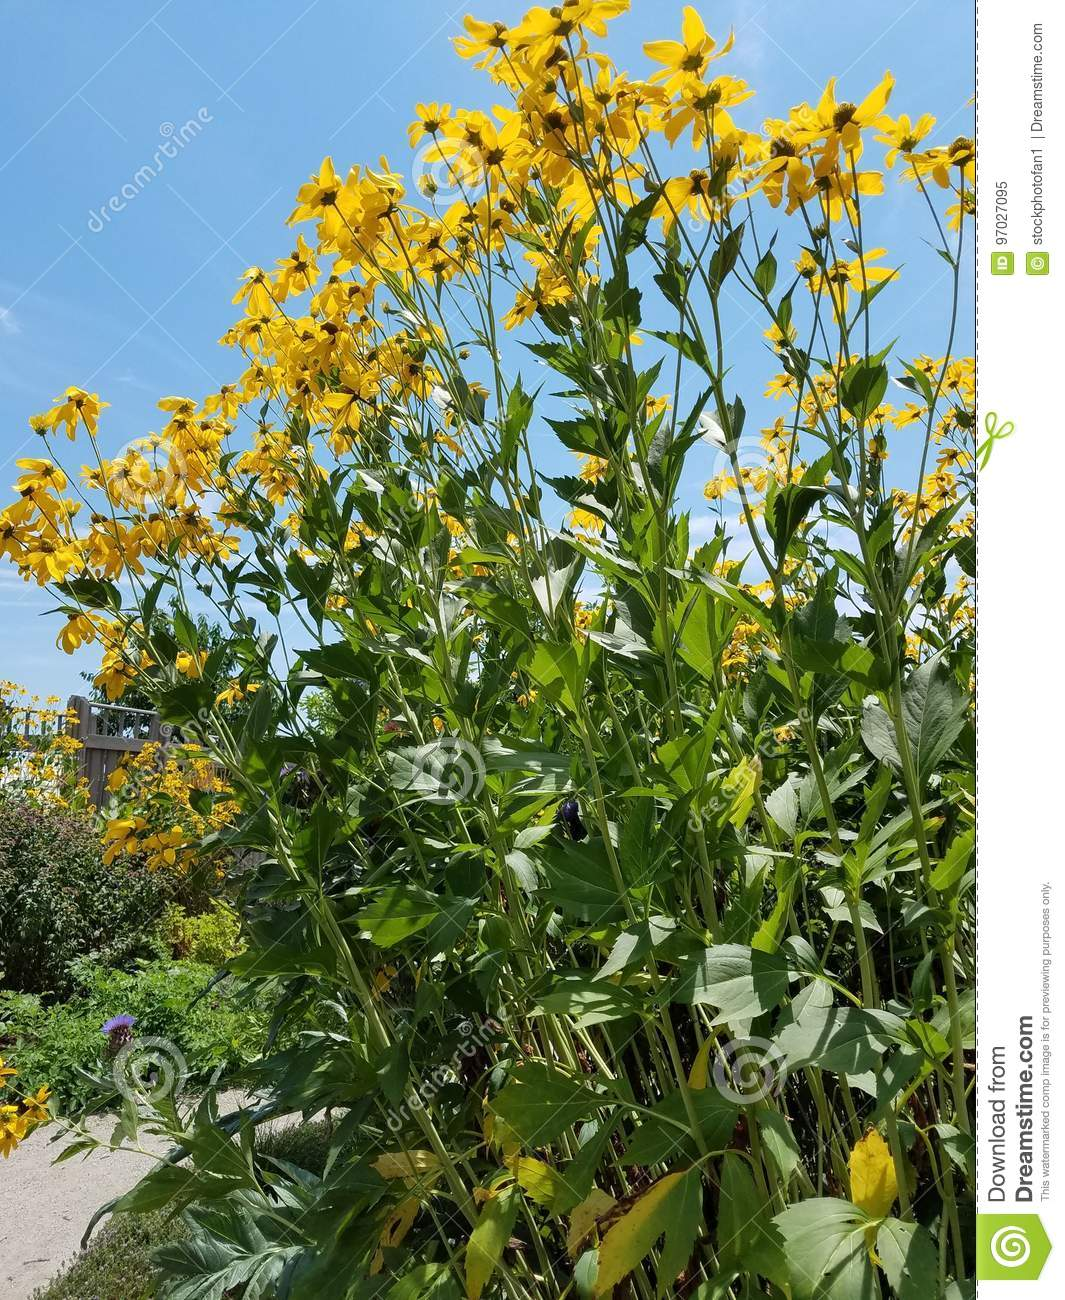 Tall Yellow Flowers With Green Leaves Stock Image Image Of Outside